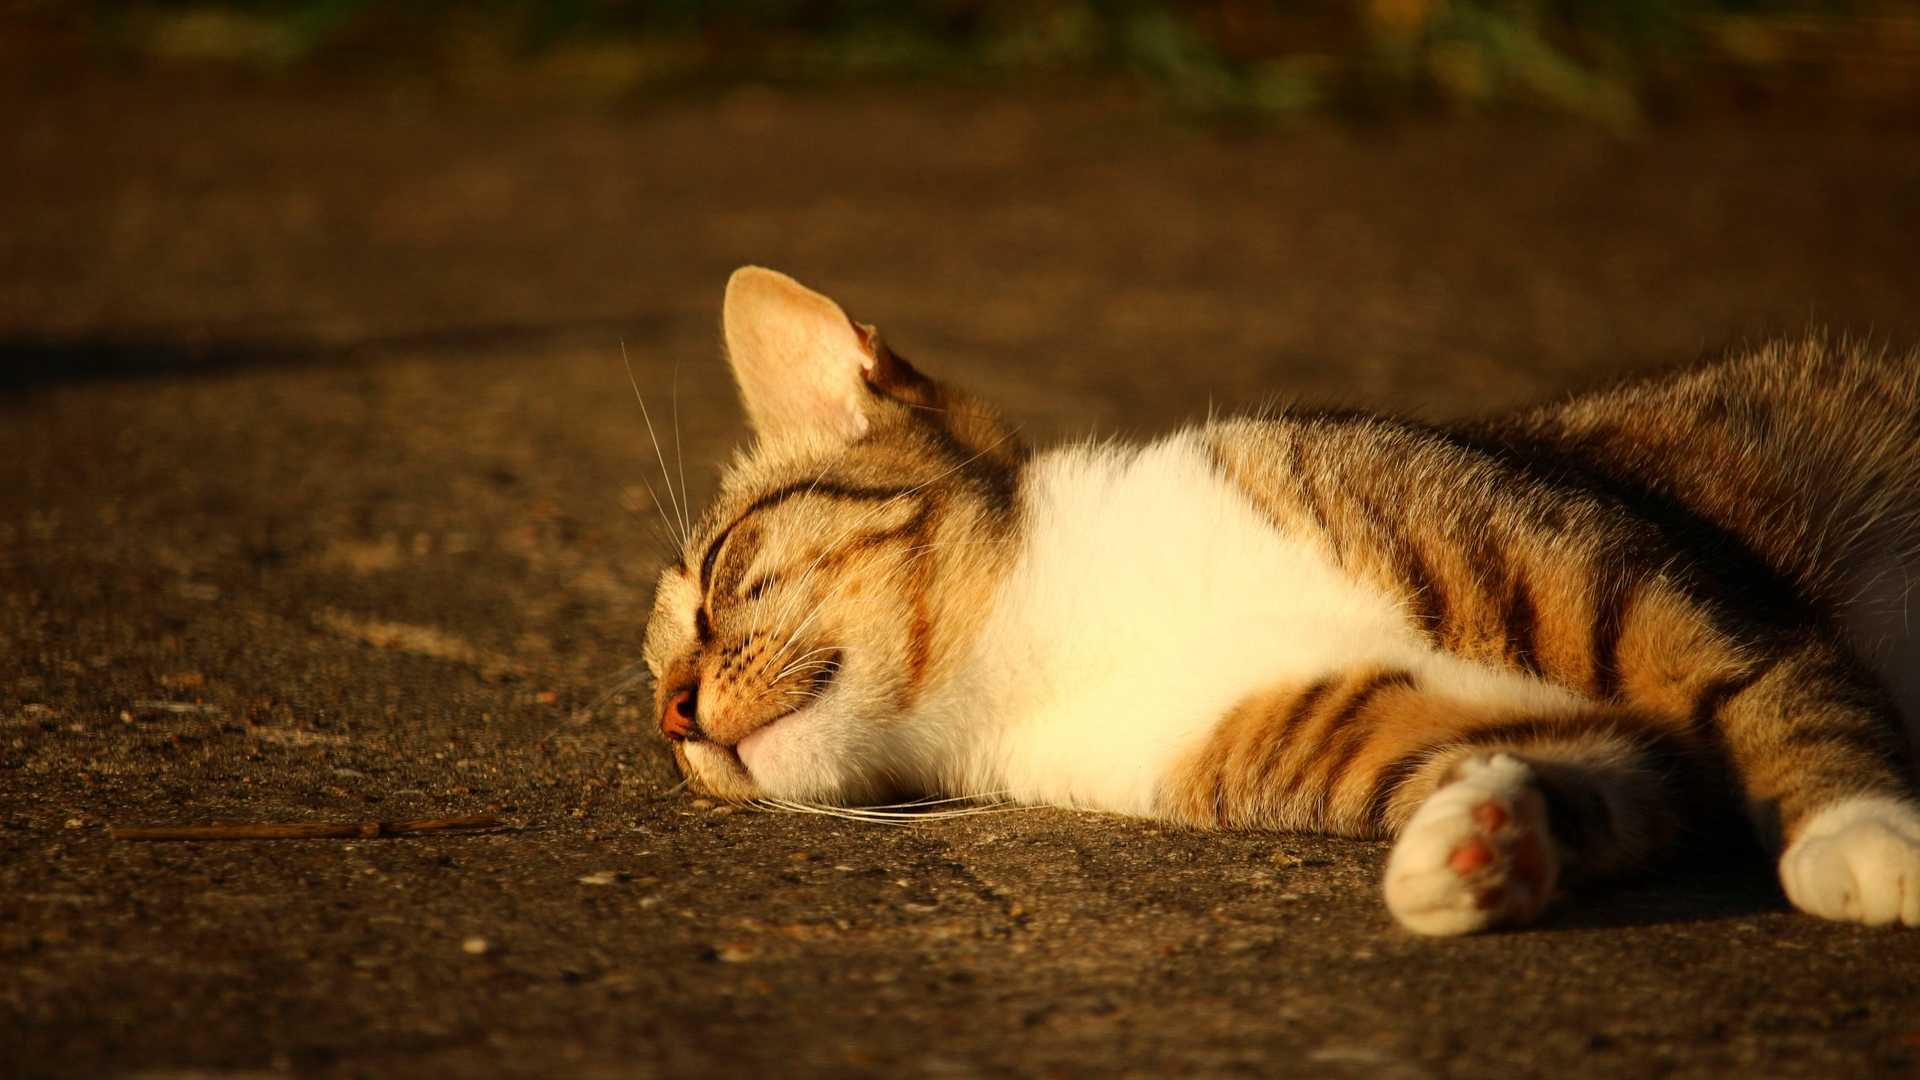 cute cat photos hd for mobile 6